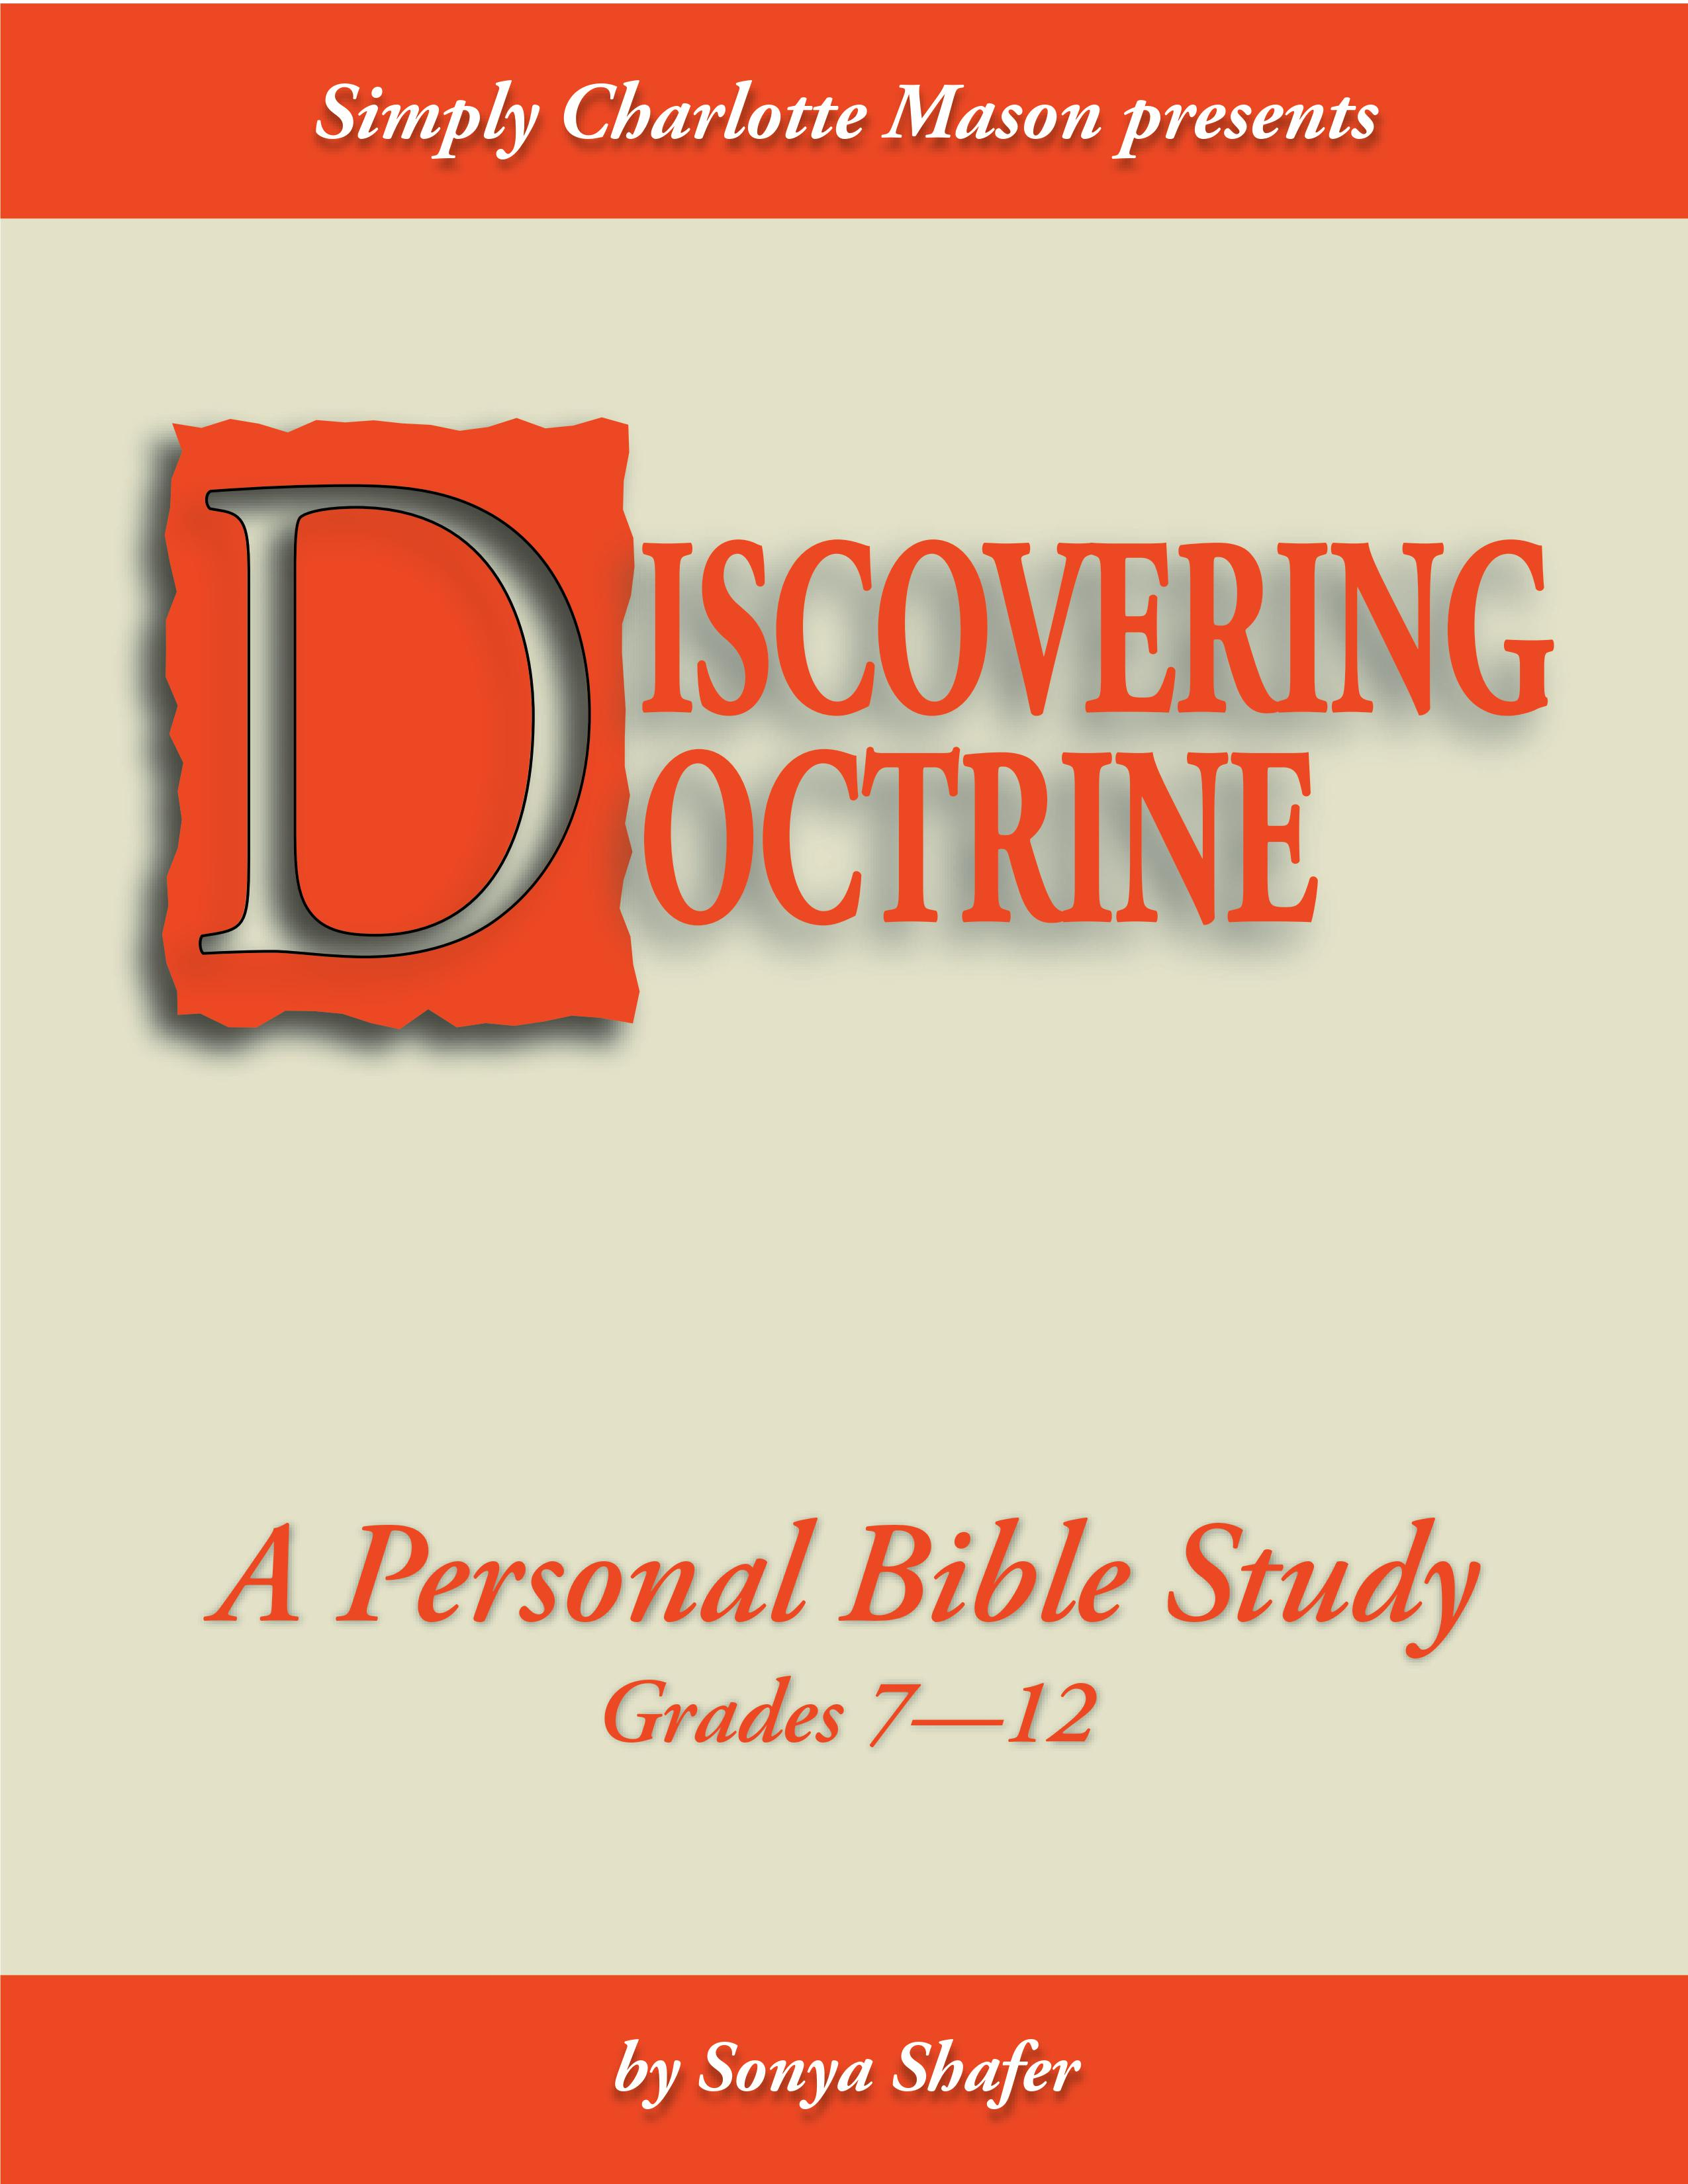 Discovering Doctrine